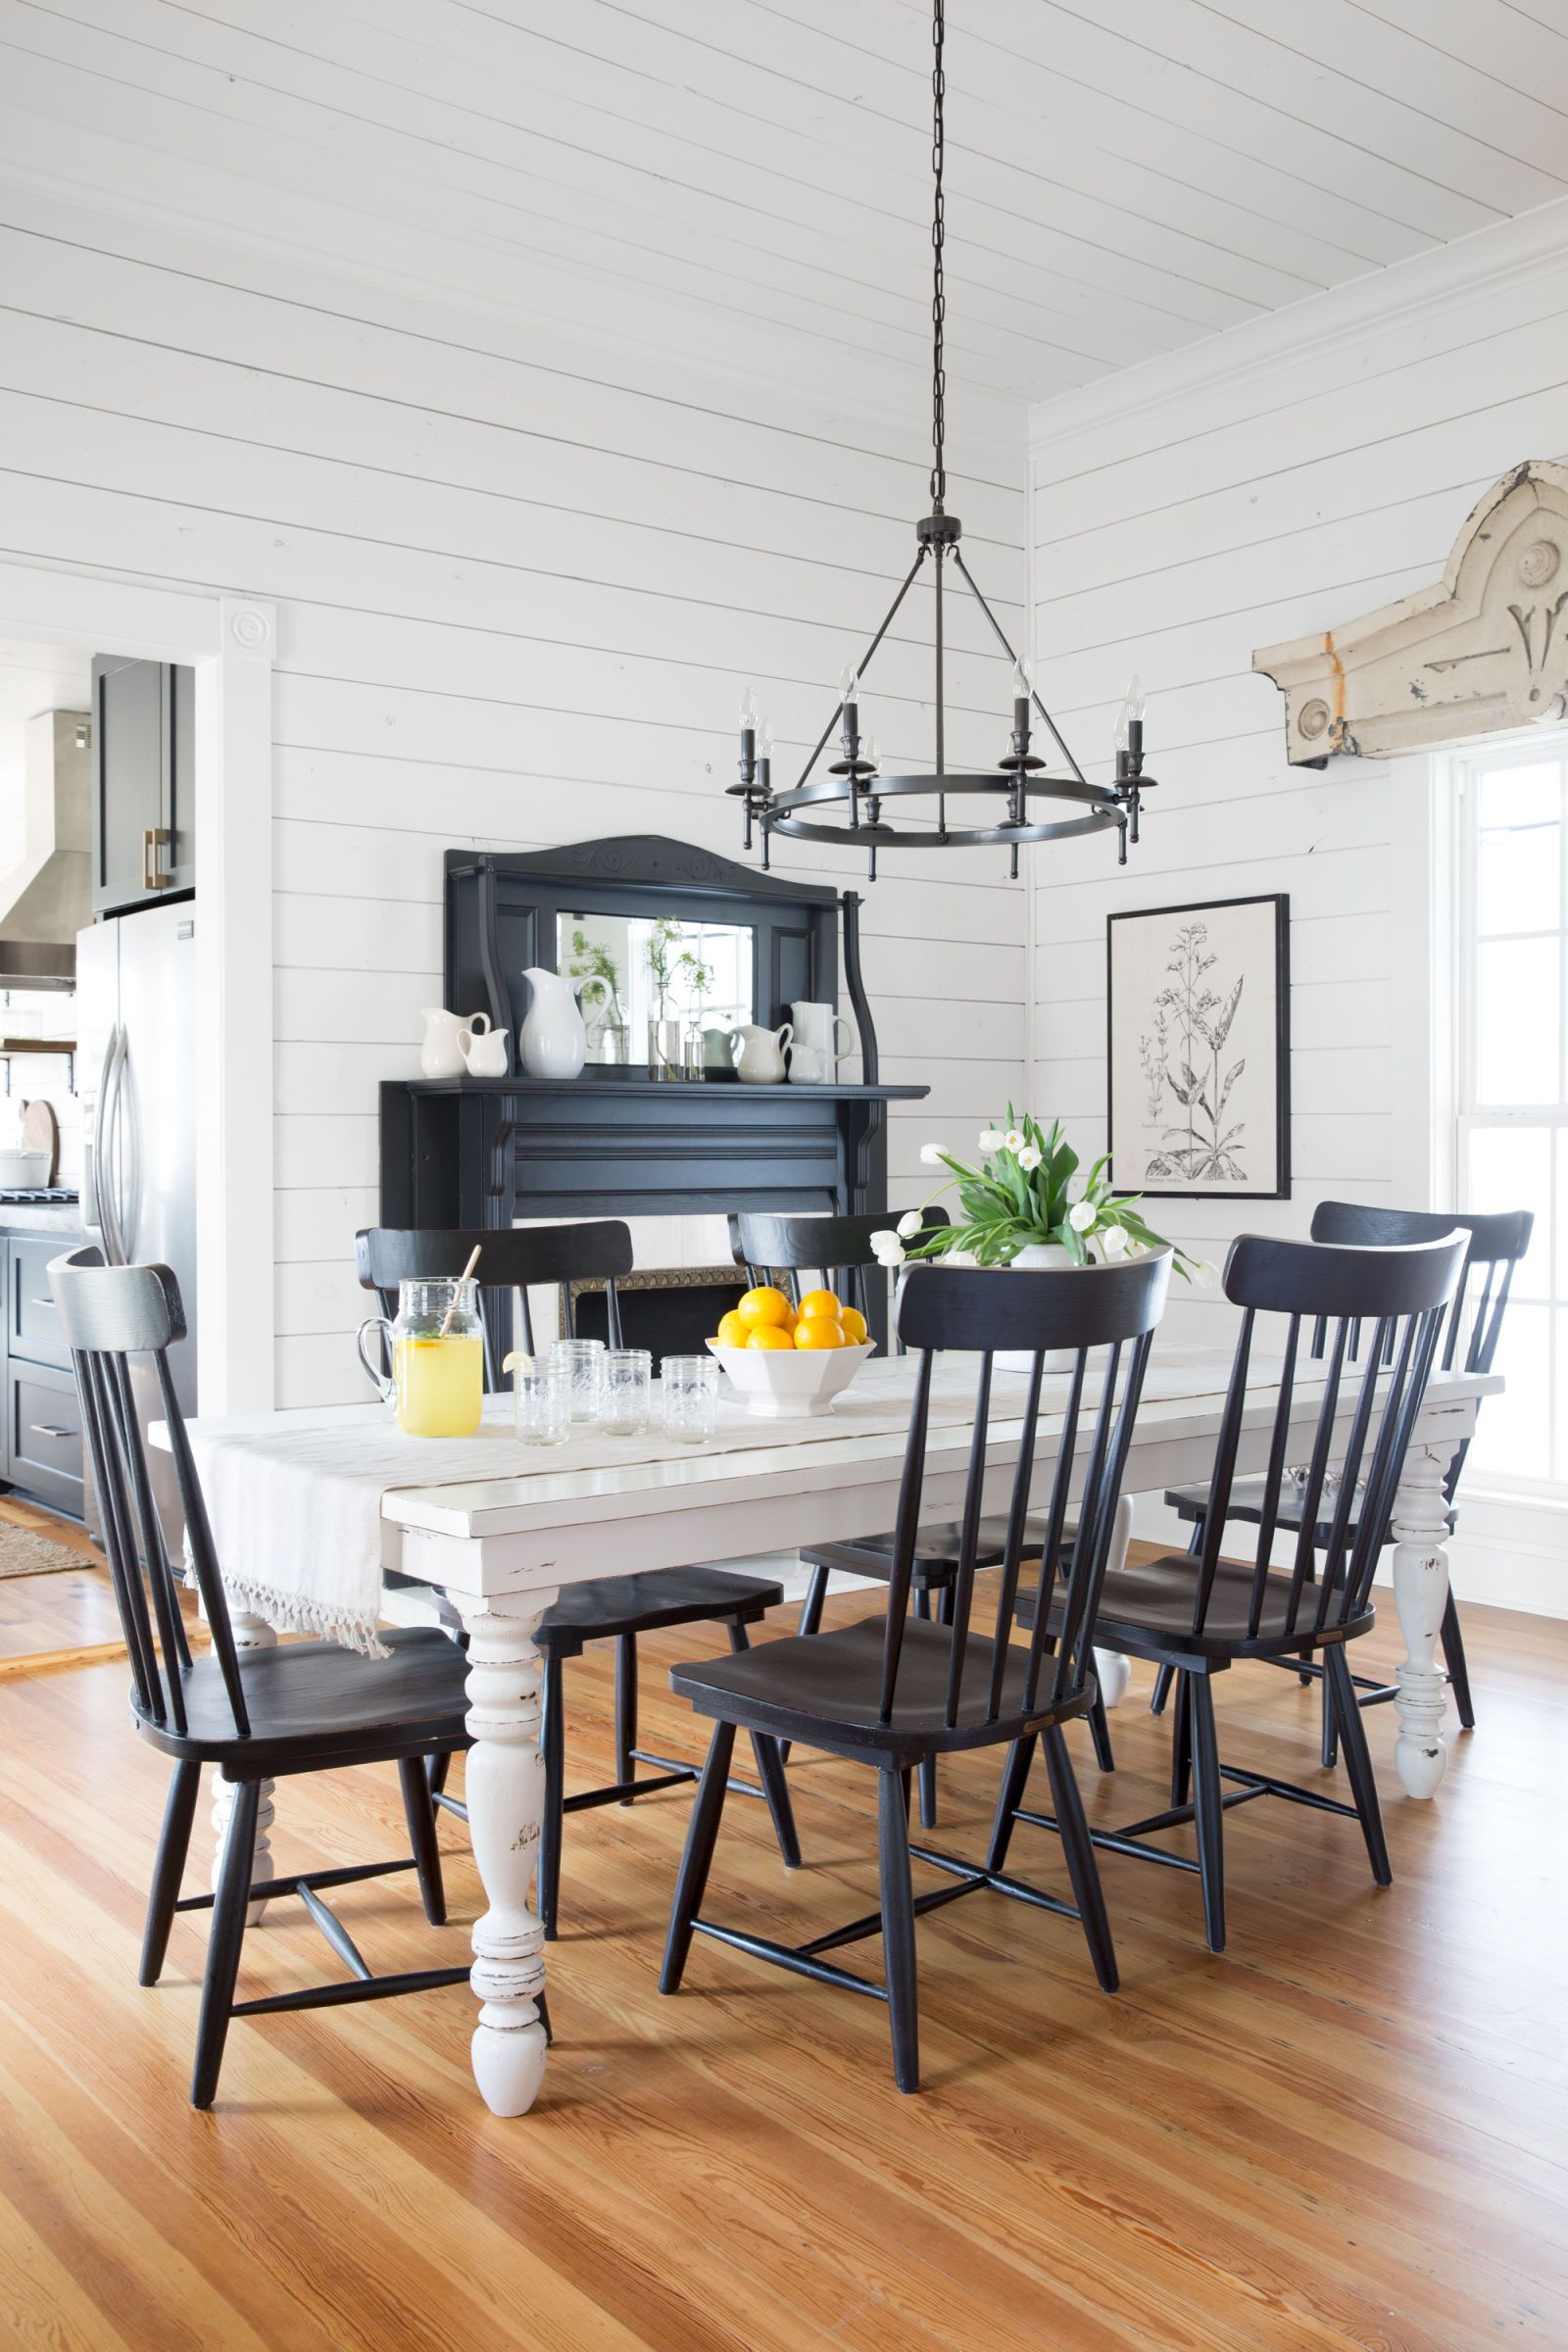 Take a tour of chip and joanna gaines 39 magnolia house b b for Joanna gaines dining room designs